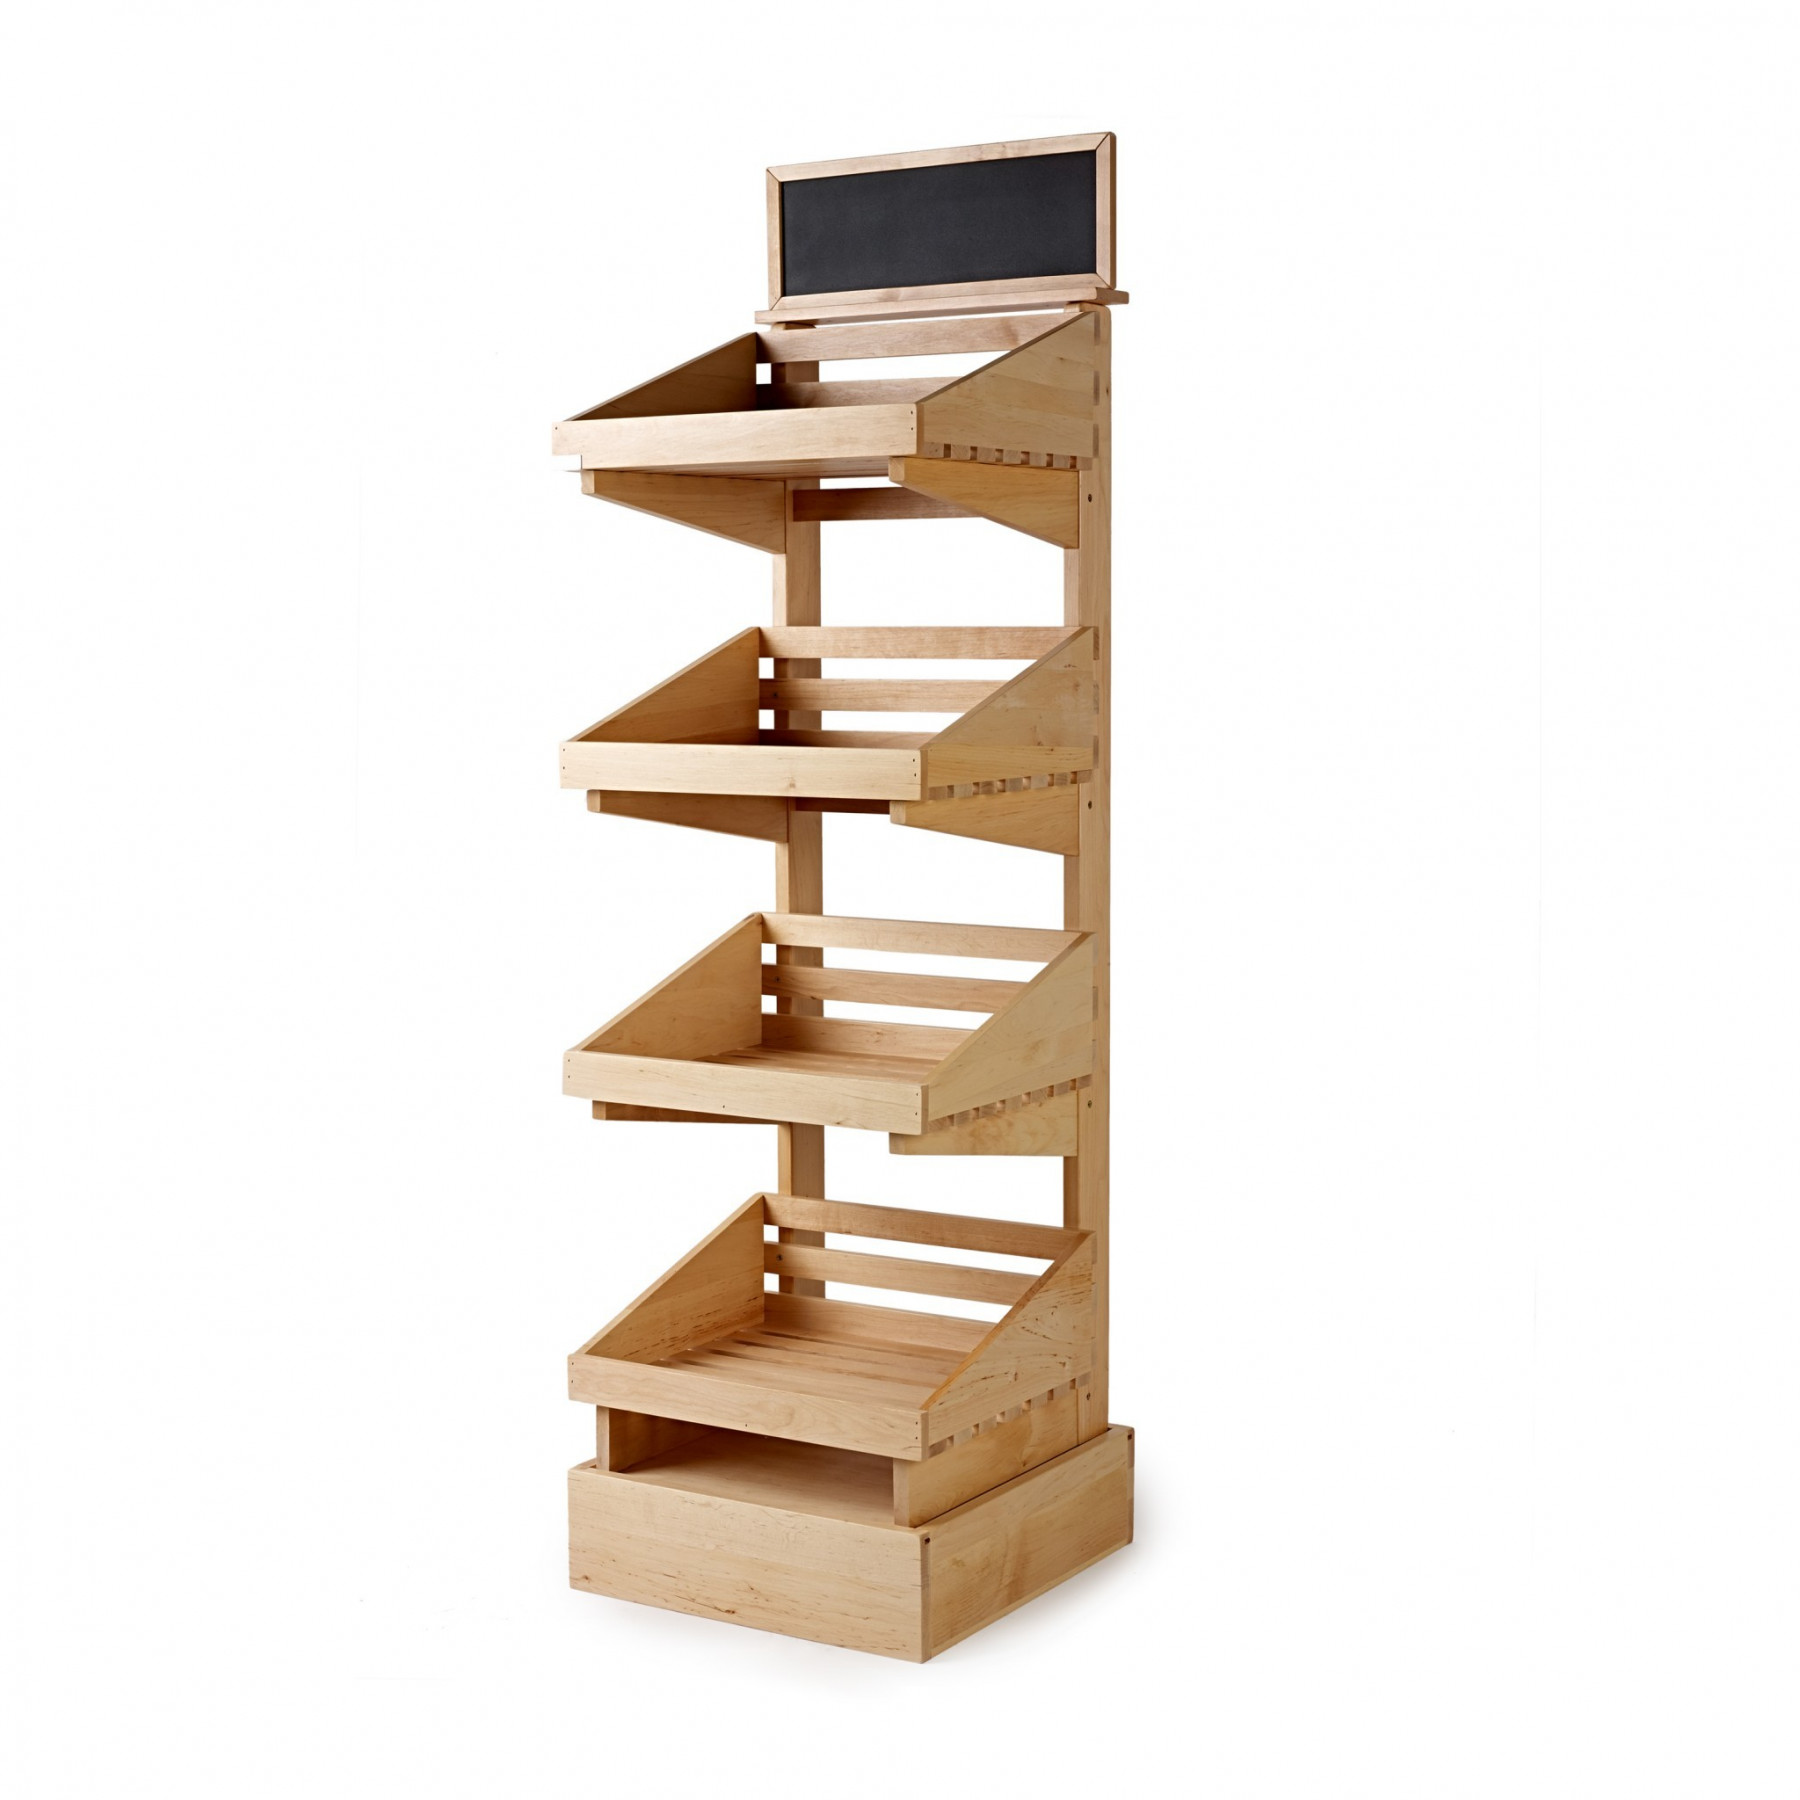 4 tier wooden display stand